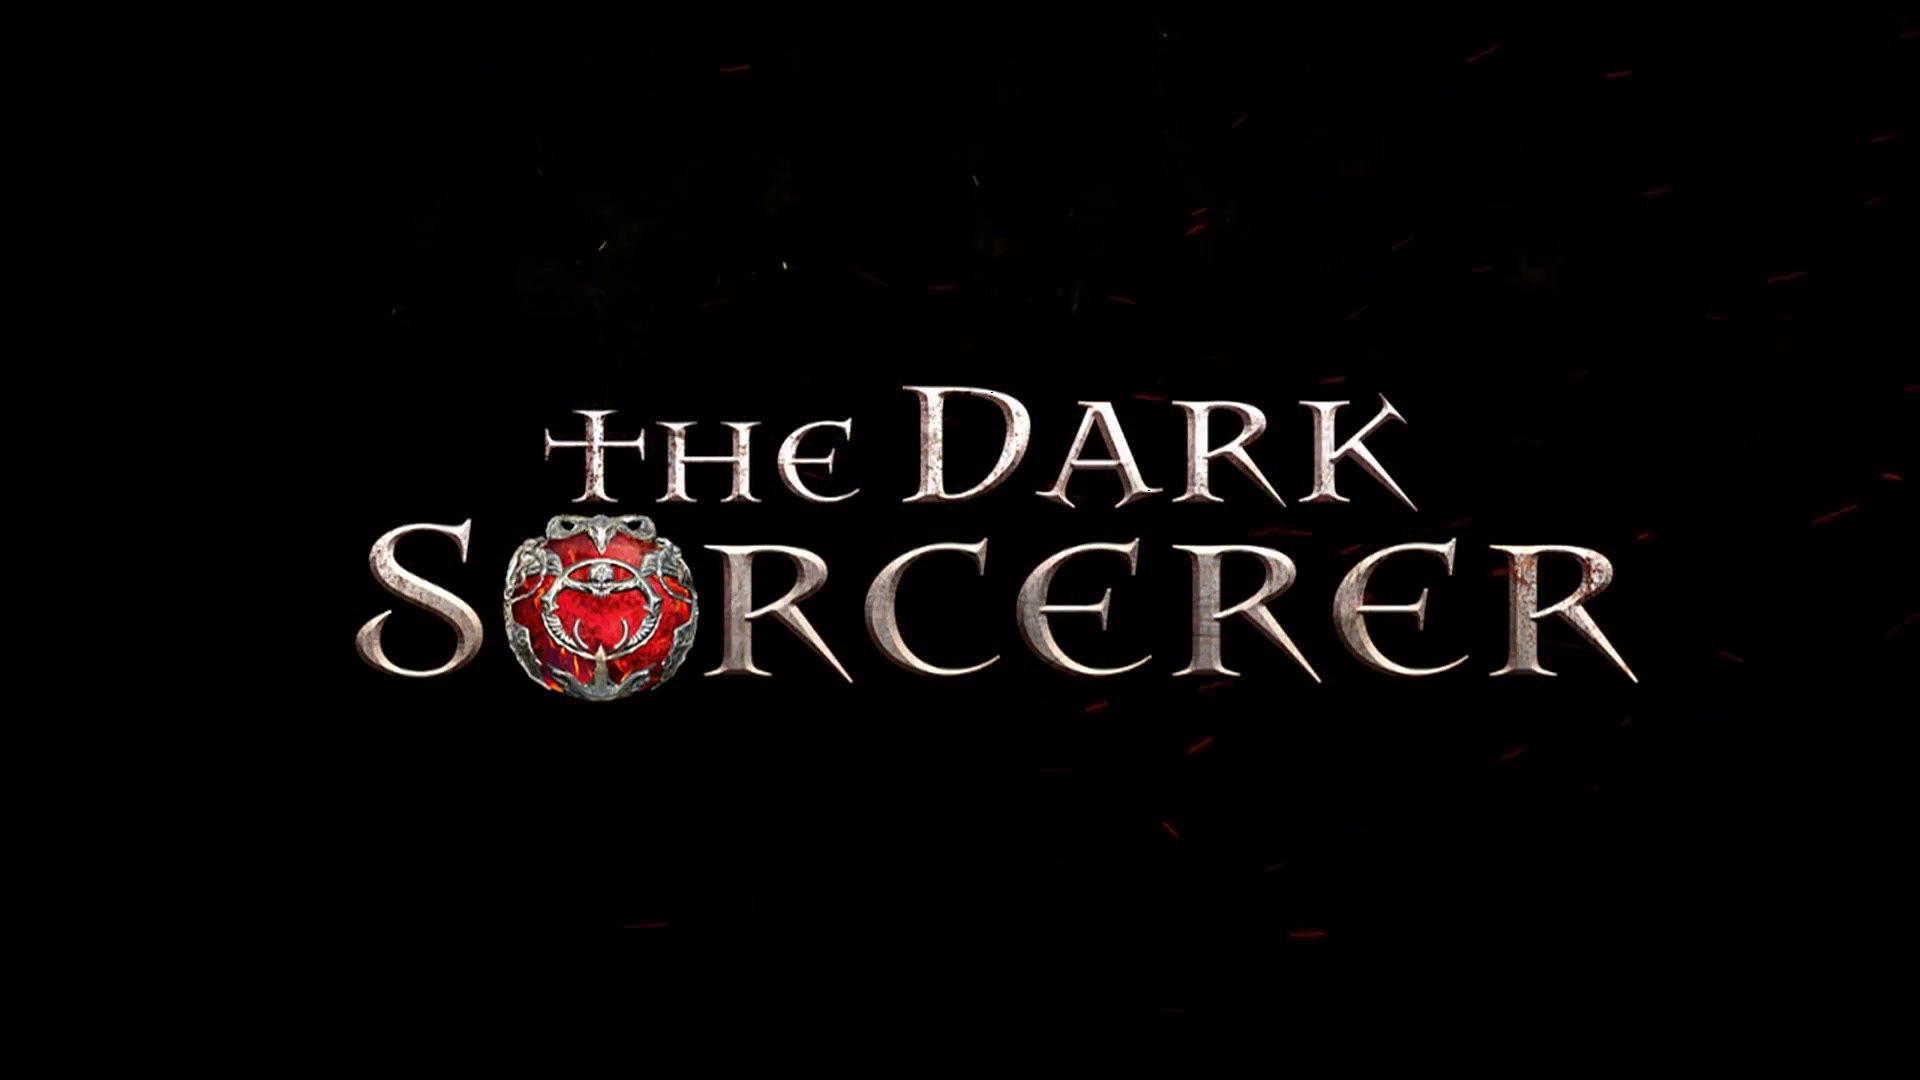 The Dark Sorcerer